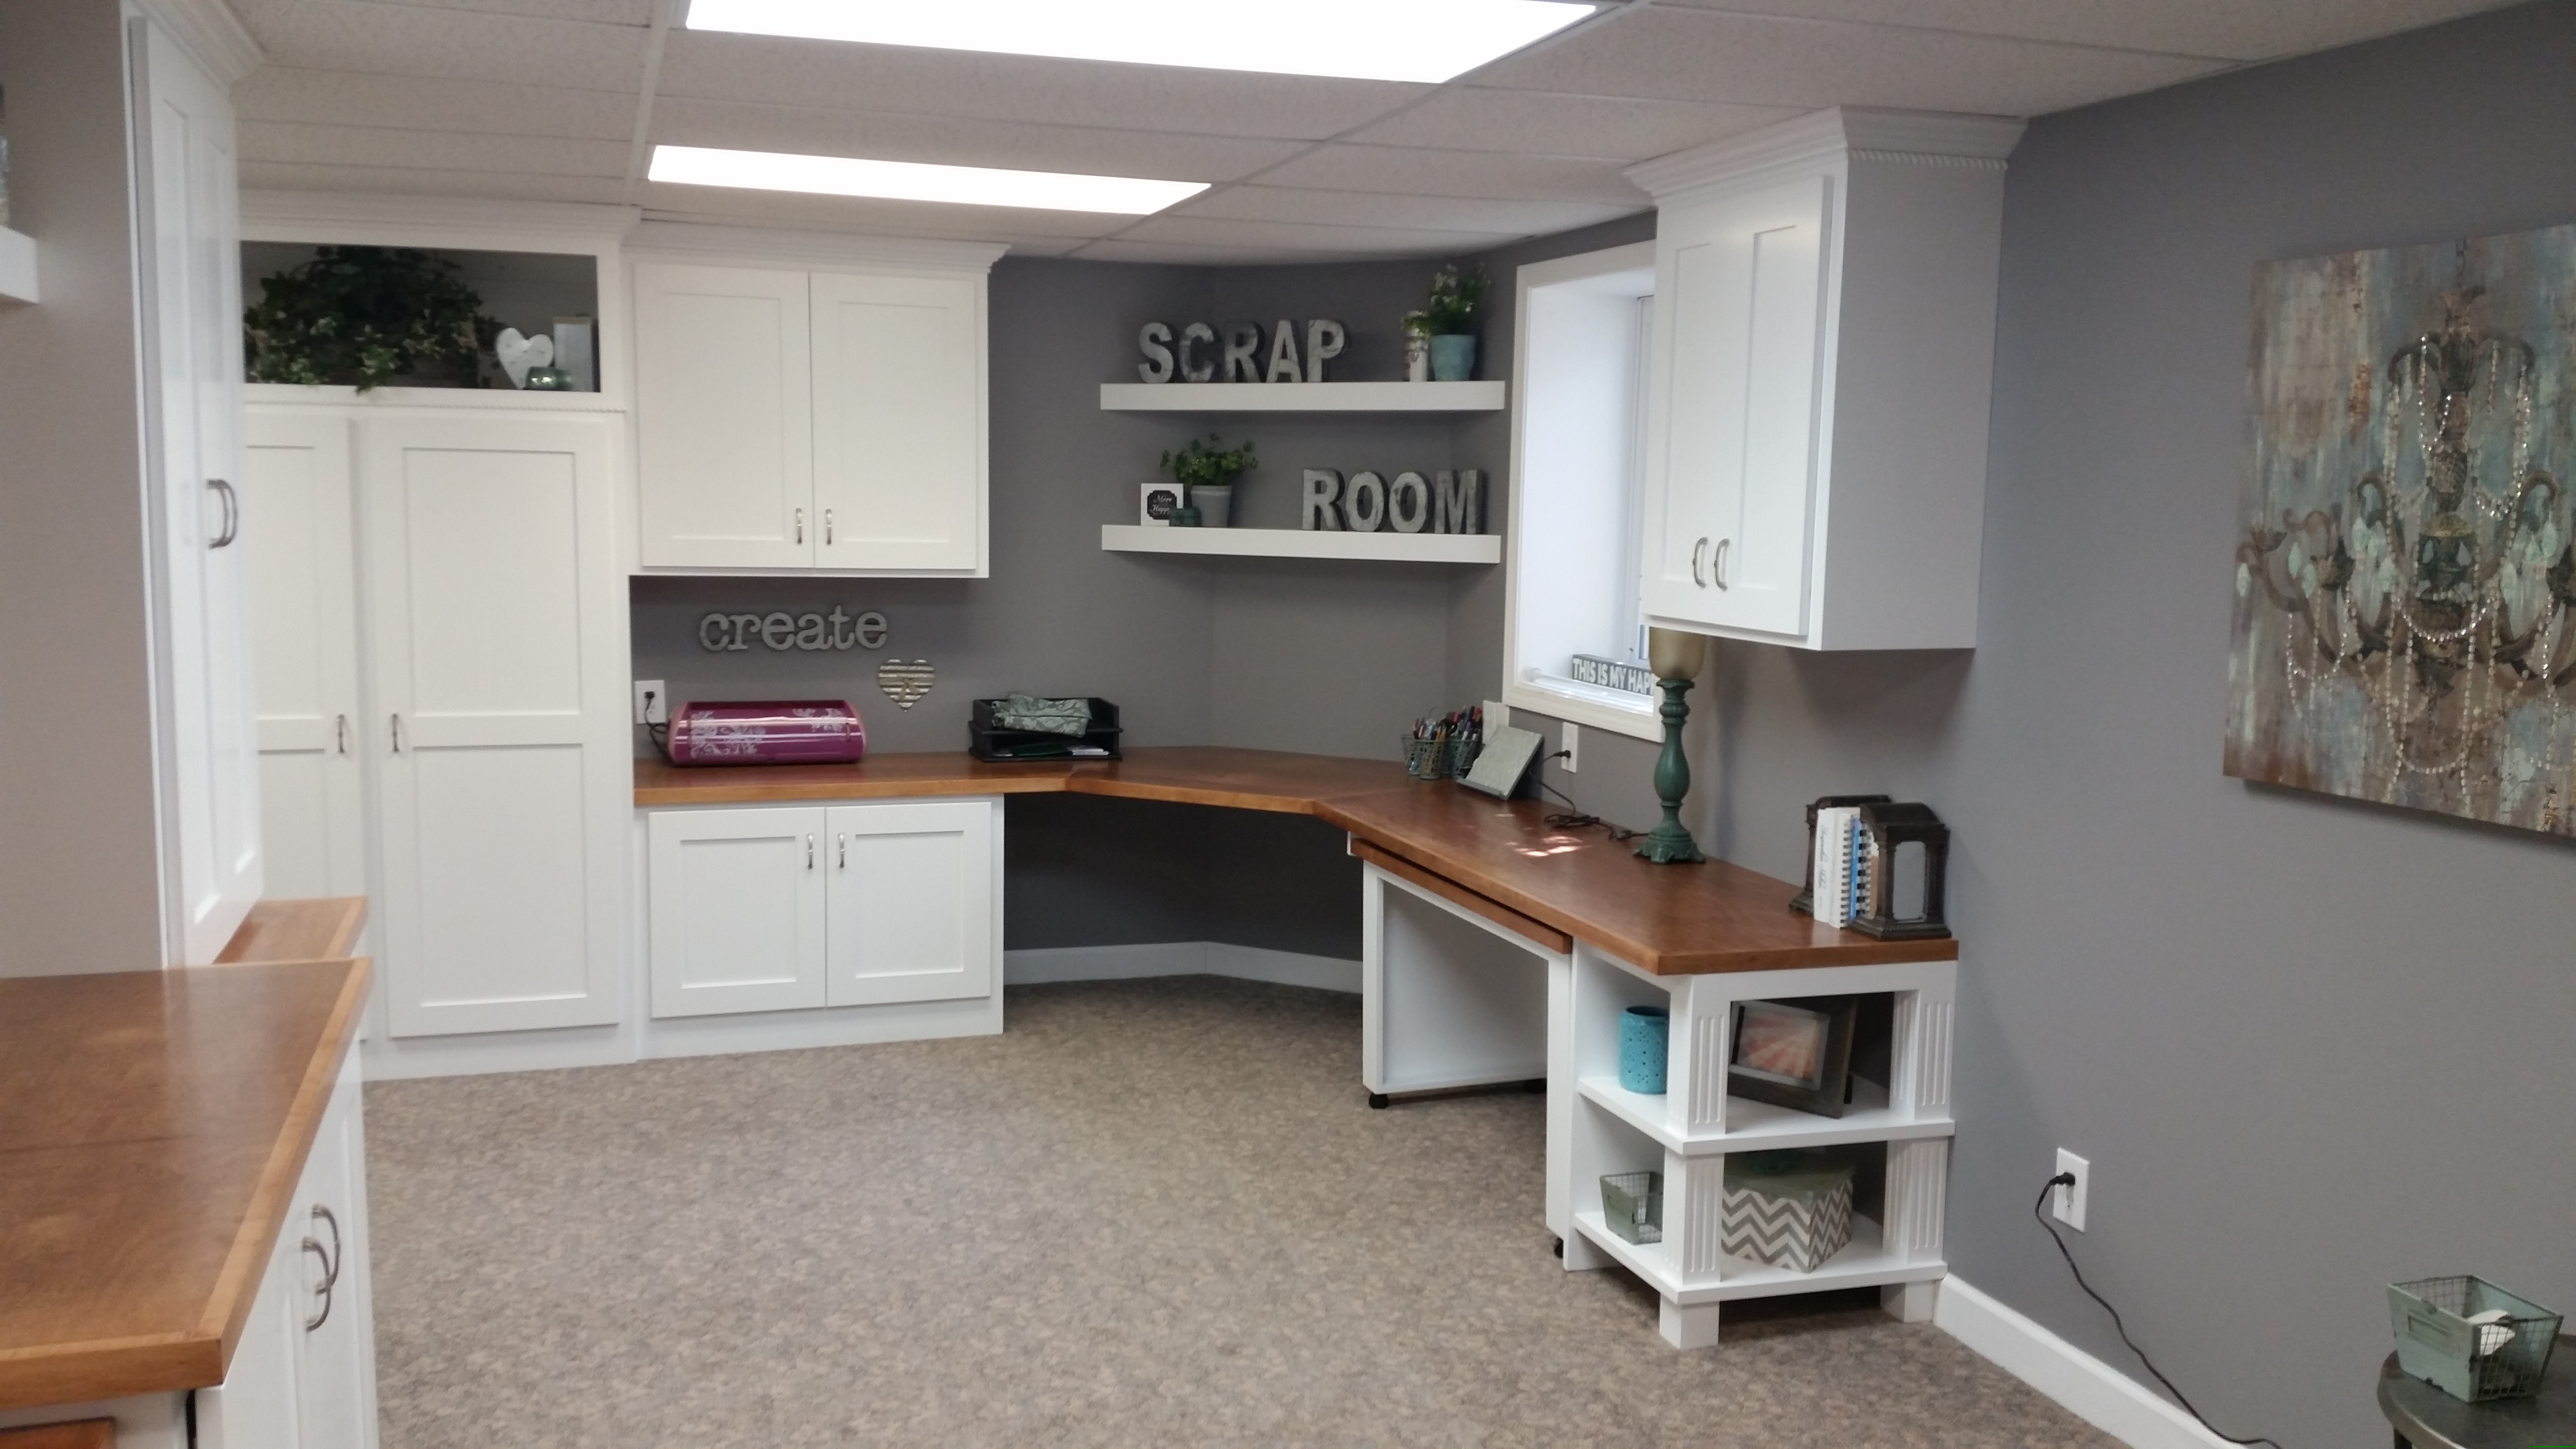 Custom Office/Craftroom Cabinets U0026 Media Cabinetry For Basement Of Clients  Home In Woodbury MN. Client Choose Painted Mission Style Cabinets With A  Custom ...